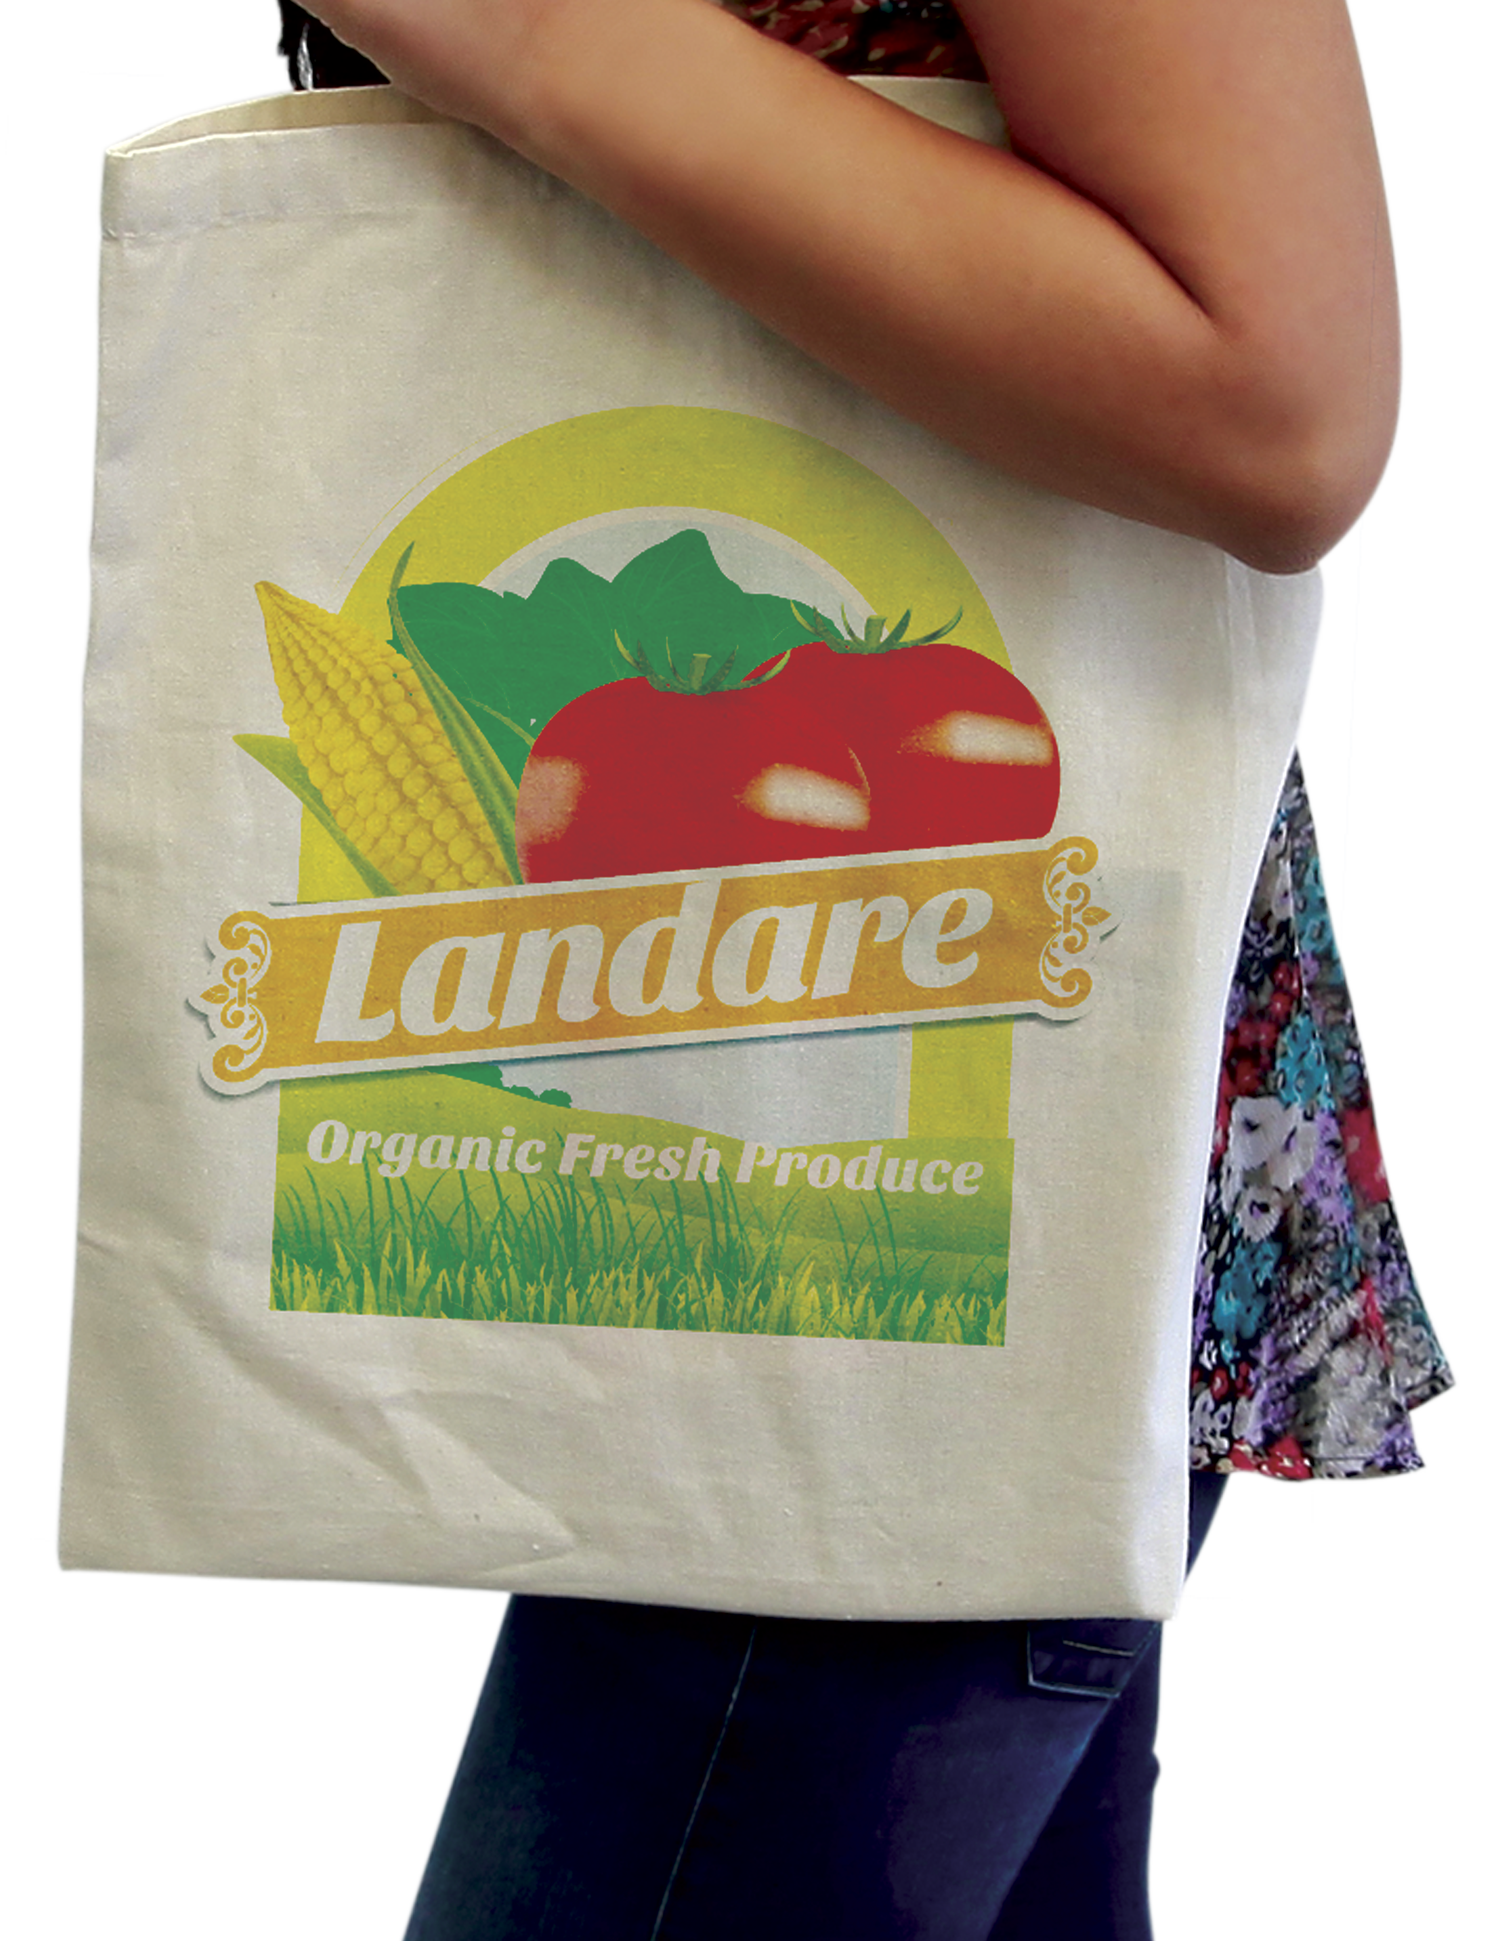 Promotional Tote Bag Printing - Full Color Printing Services - Roseville Printing California